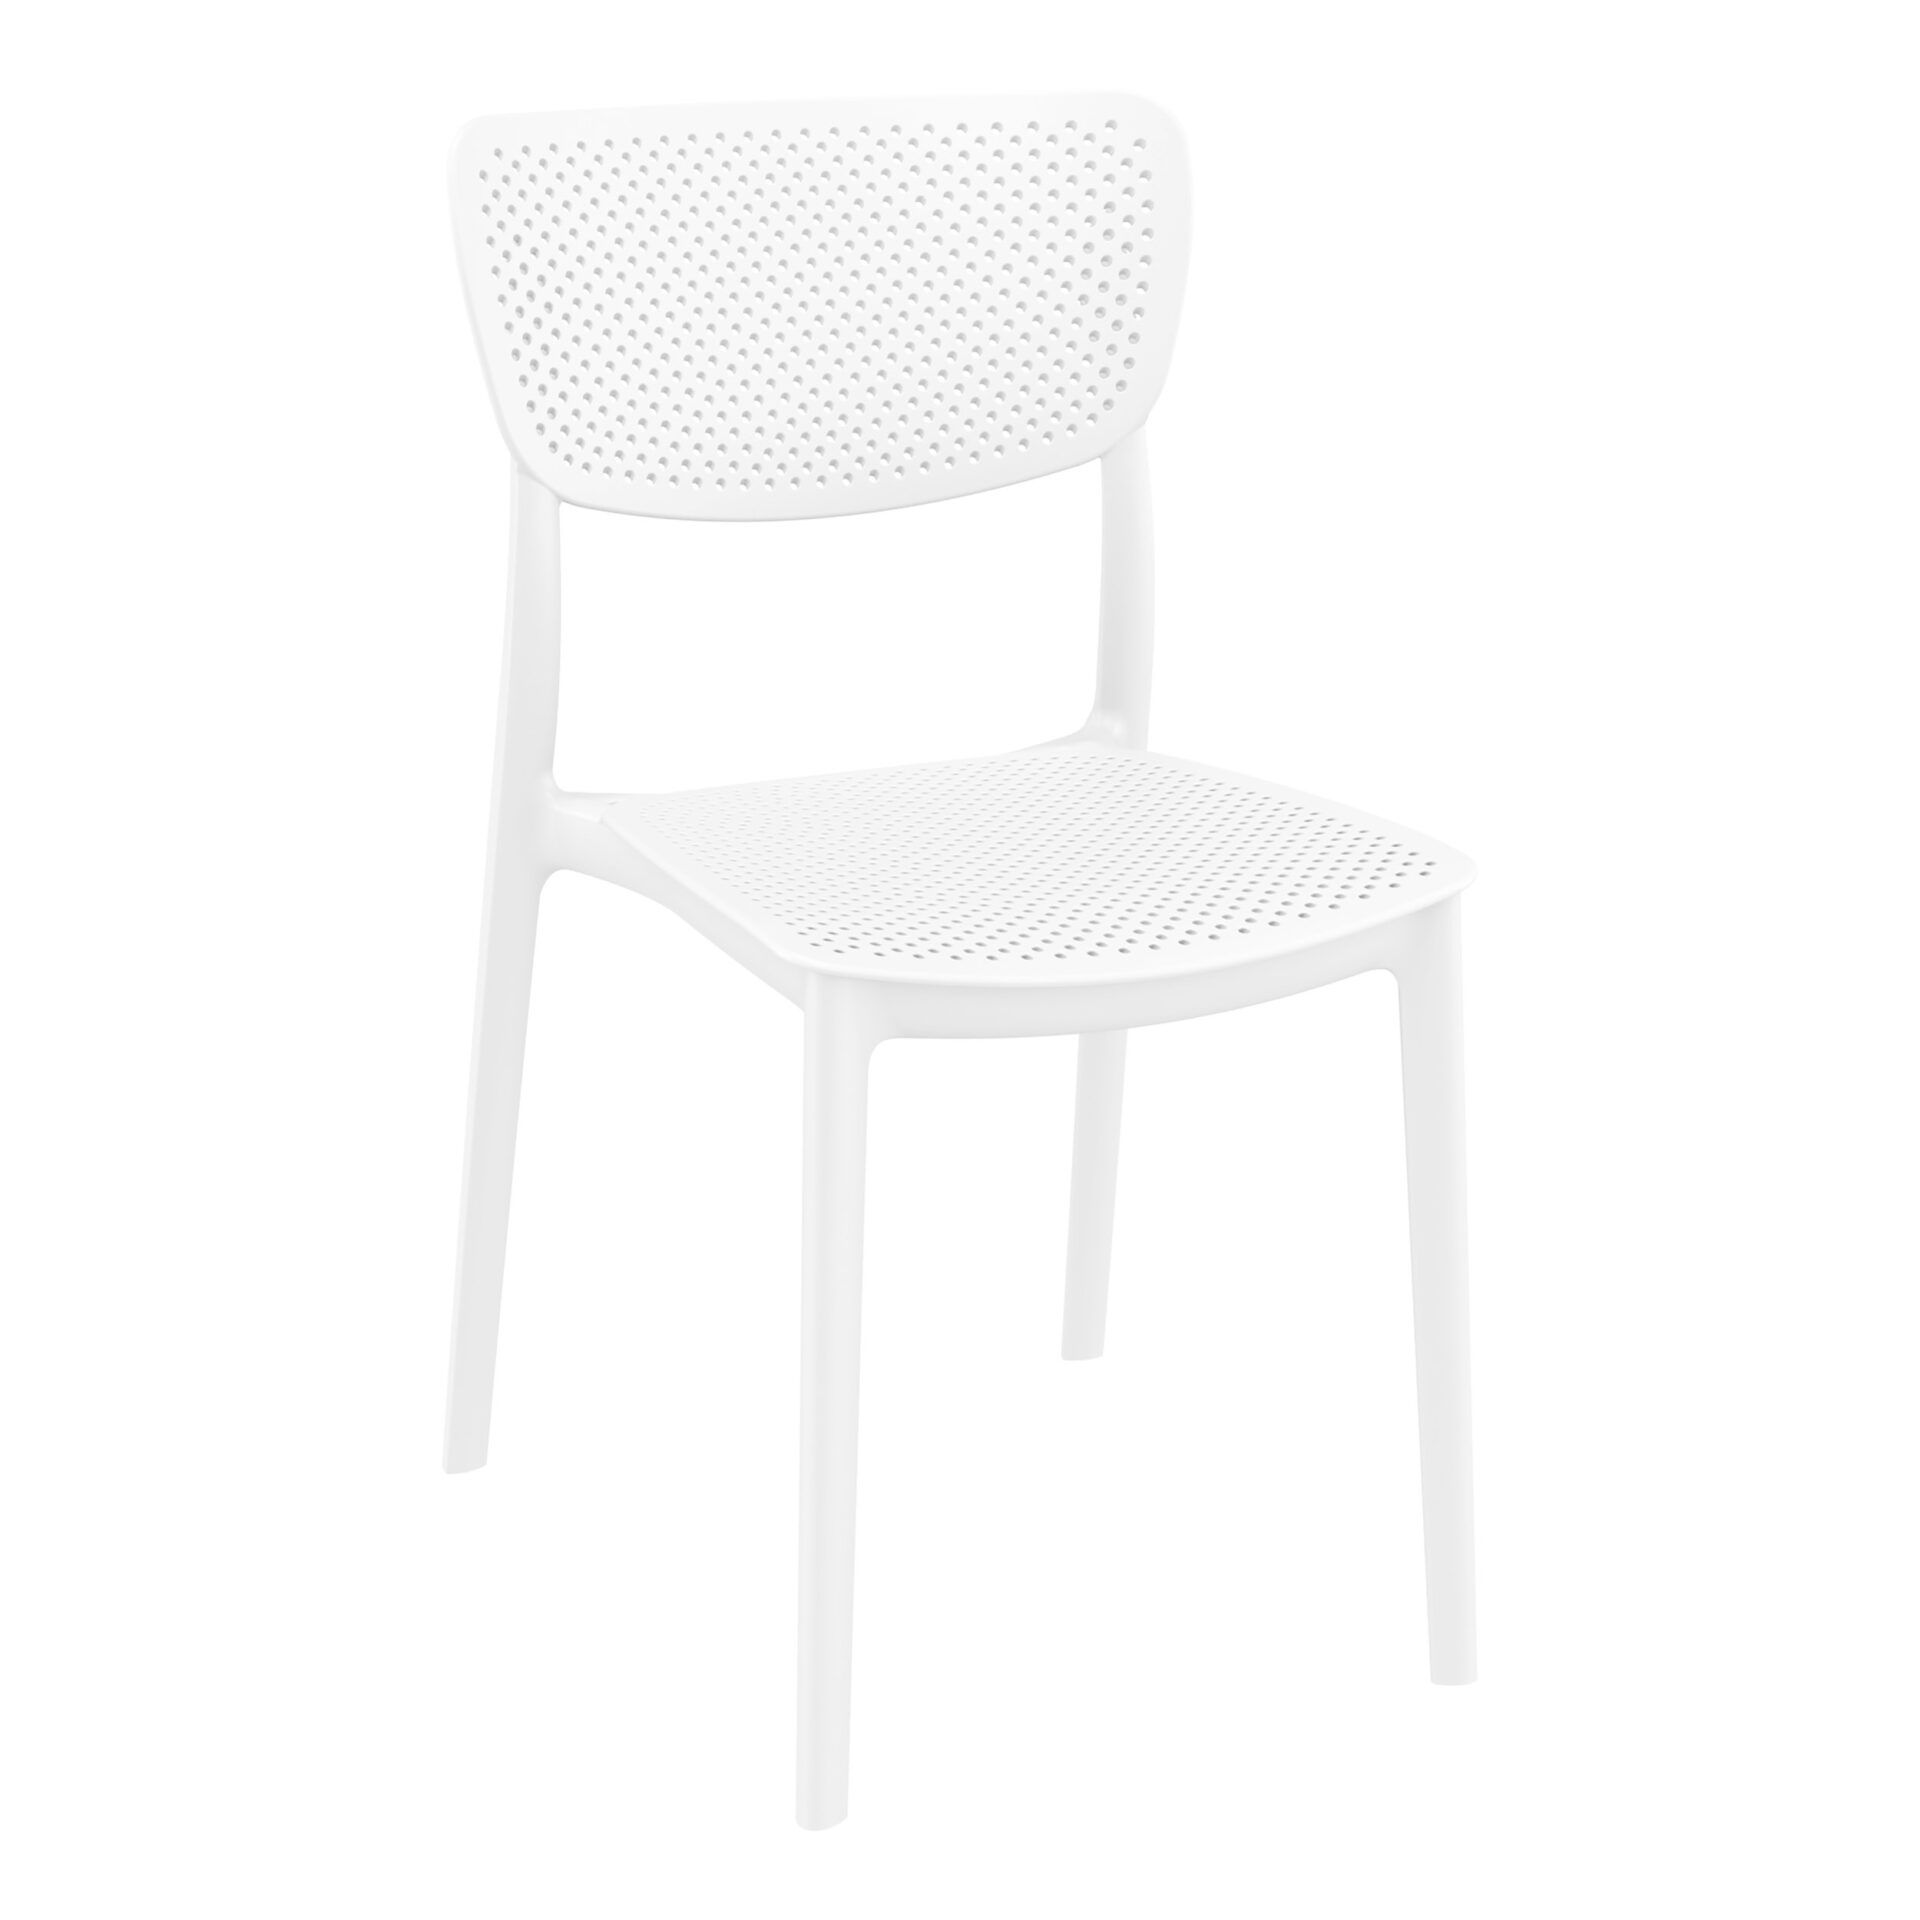 polypropylene hospitality seating lucy chair white front side